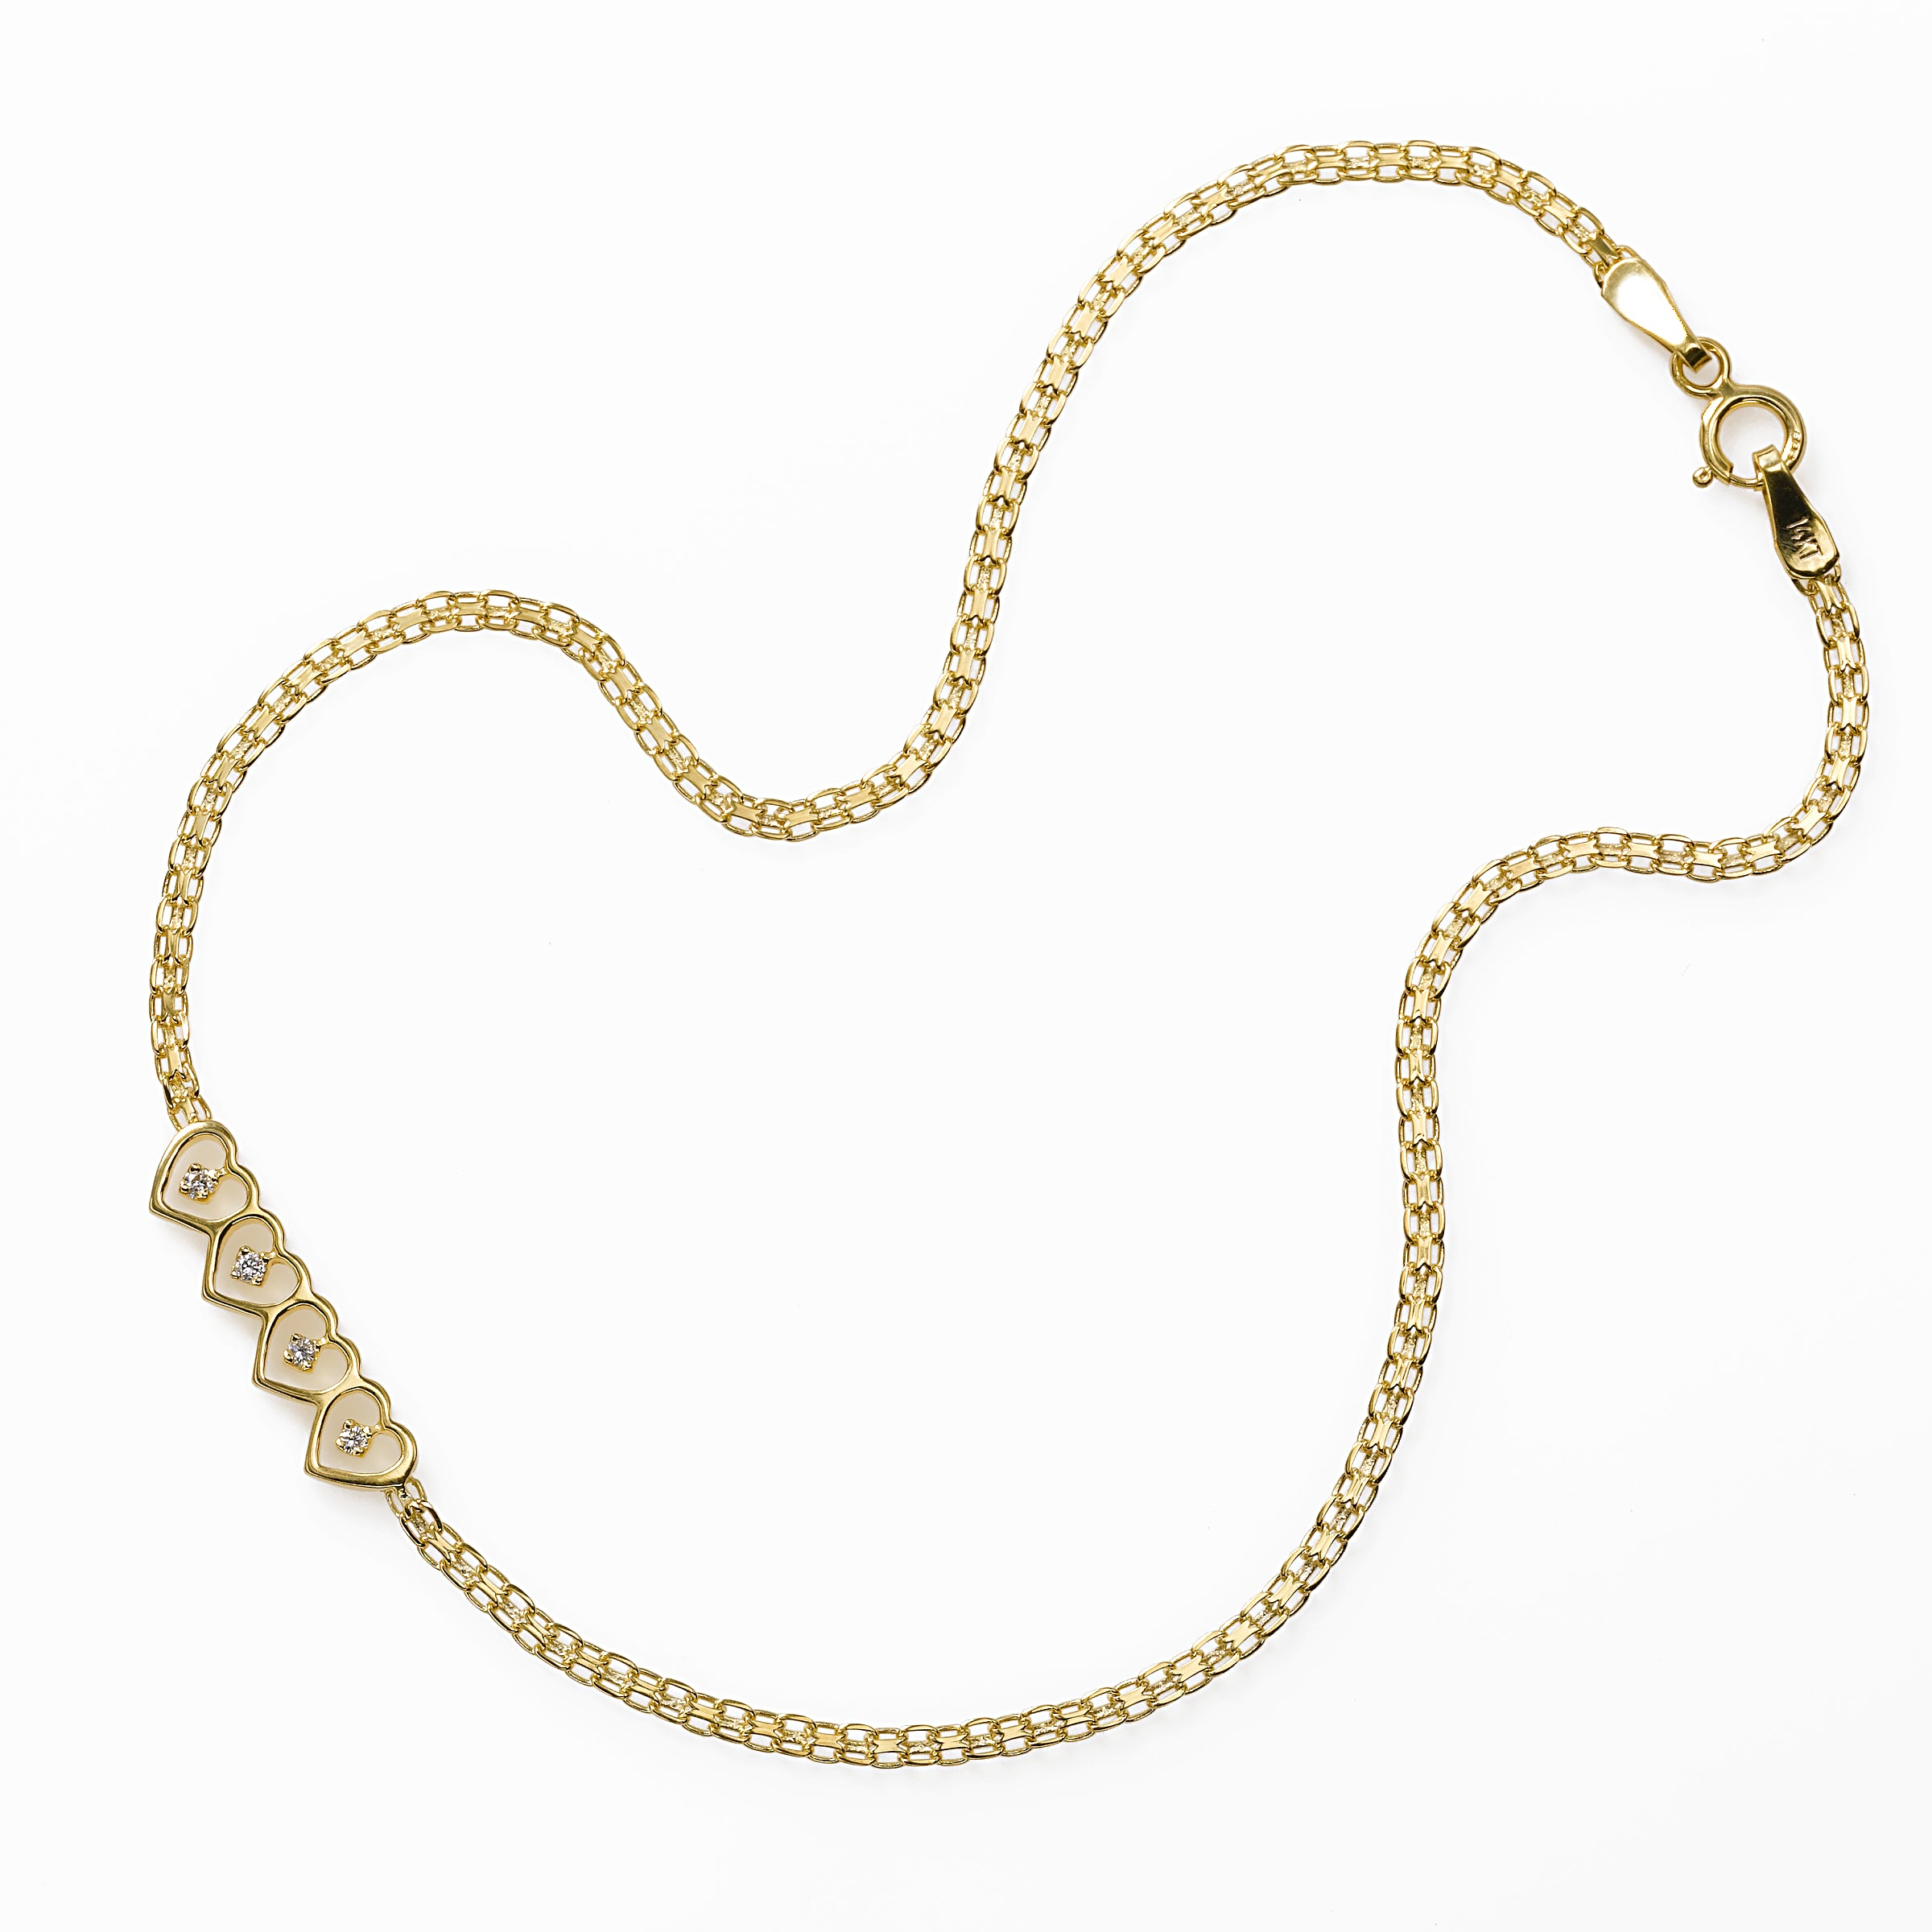 Diamond Accent Open Hearts Ankle Bracelet, 14K